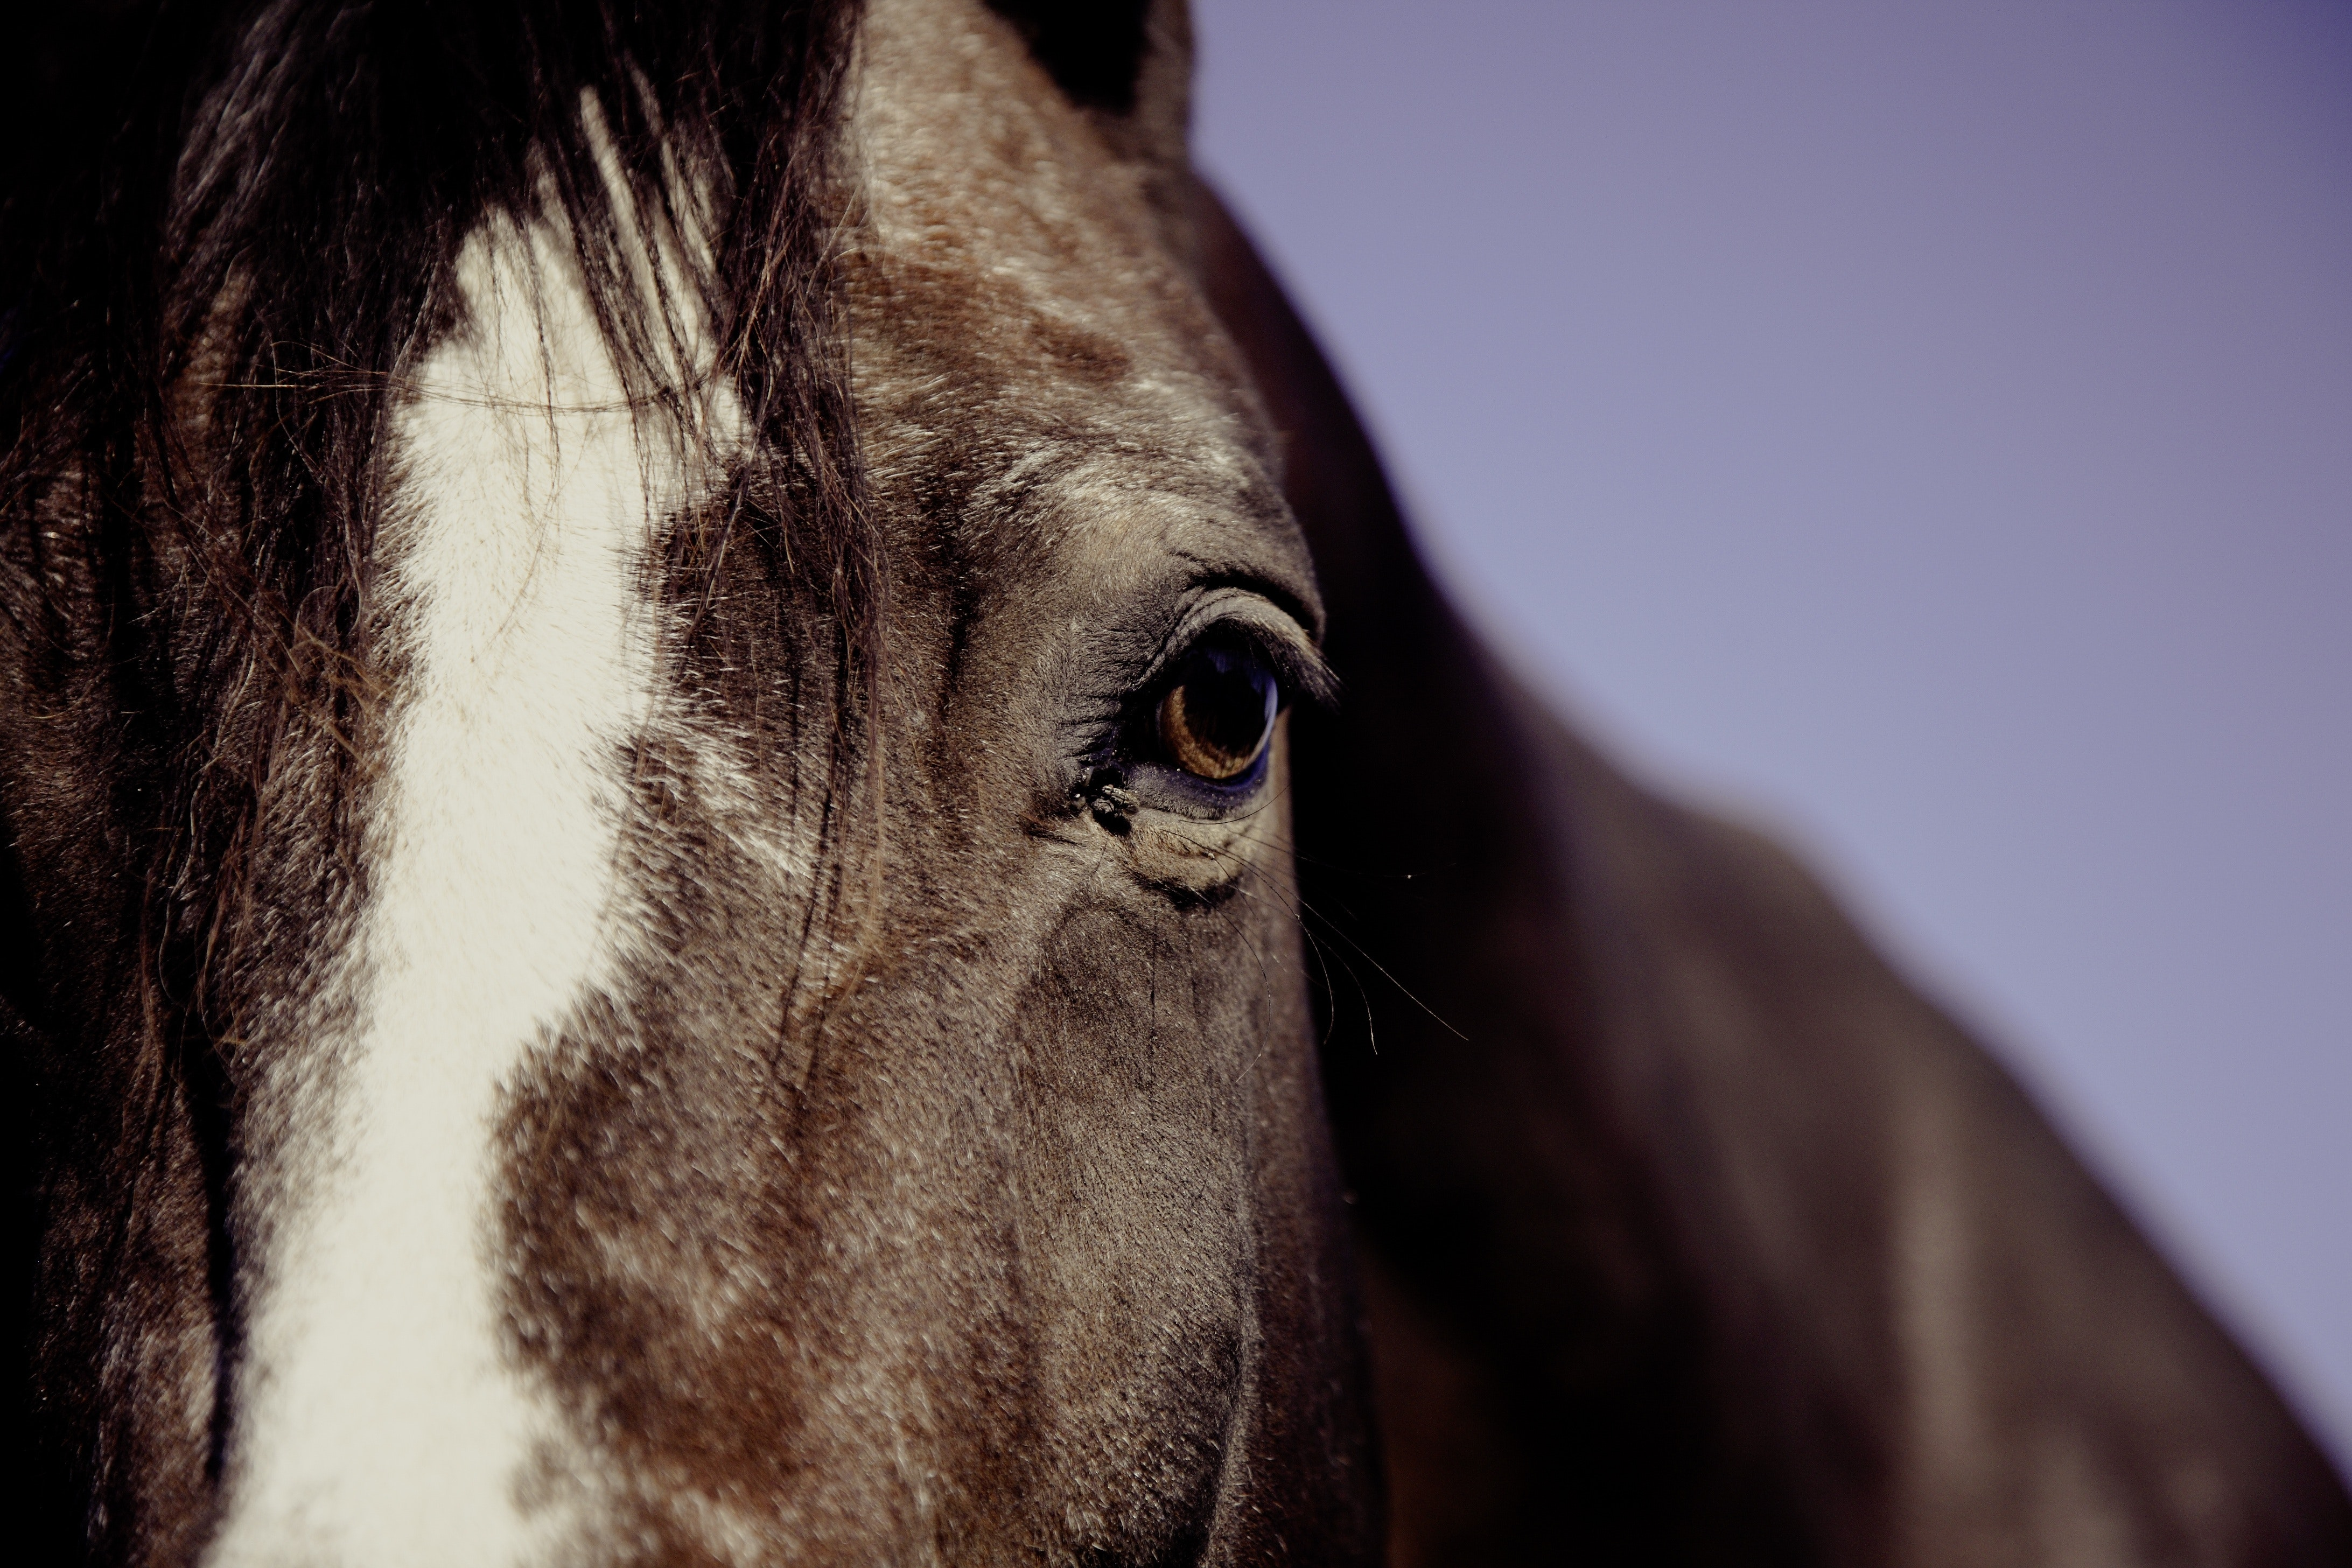 Horse face in focus phography photo